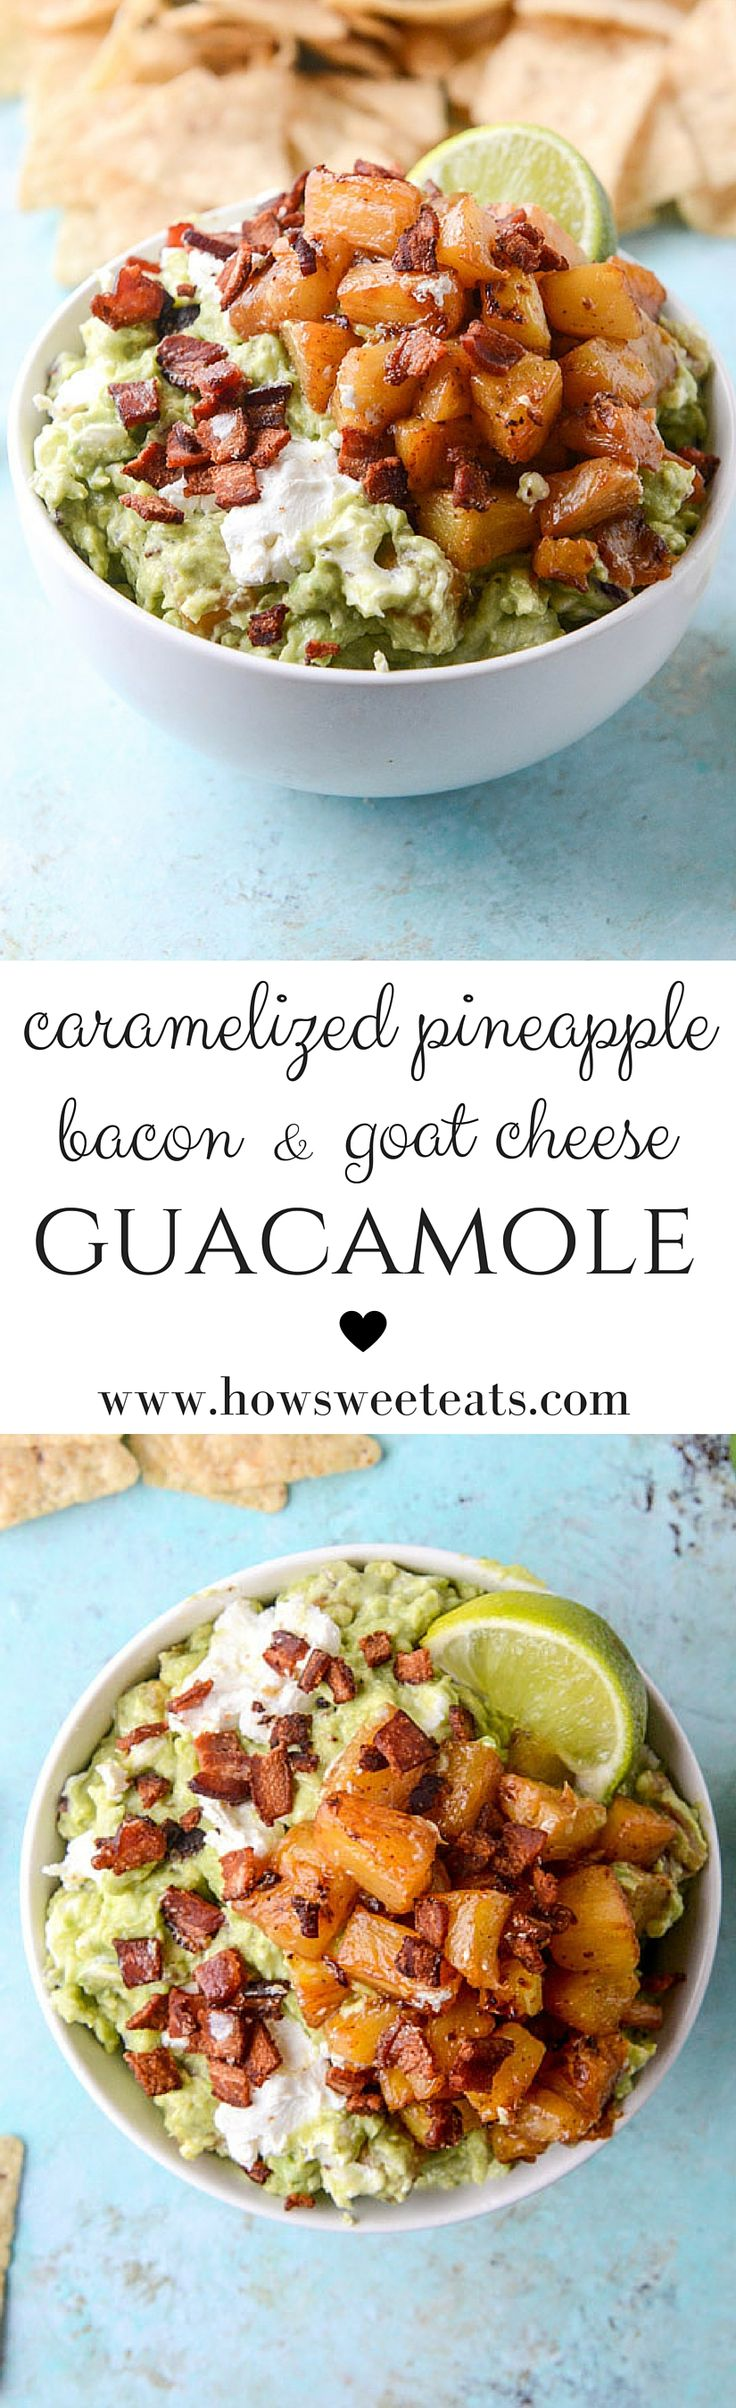 caramelized pineapple, bacon and goat cheese guacamole I http://howsweeteats.com